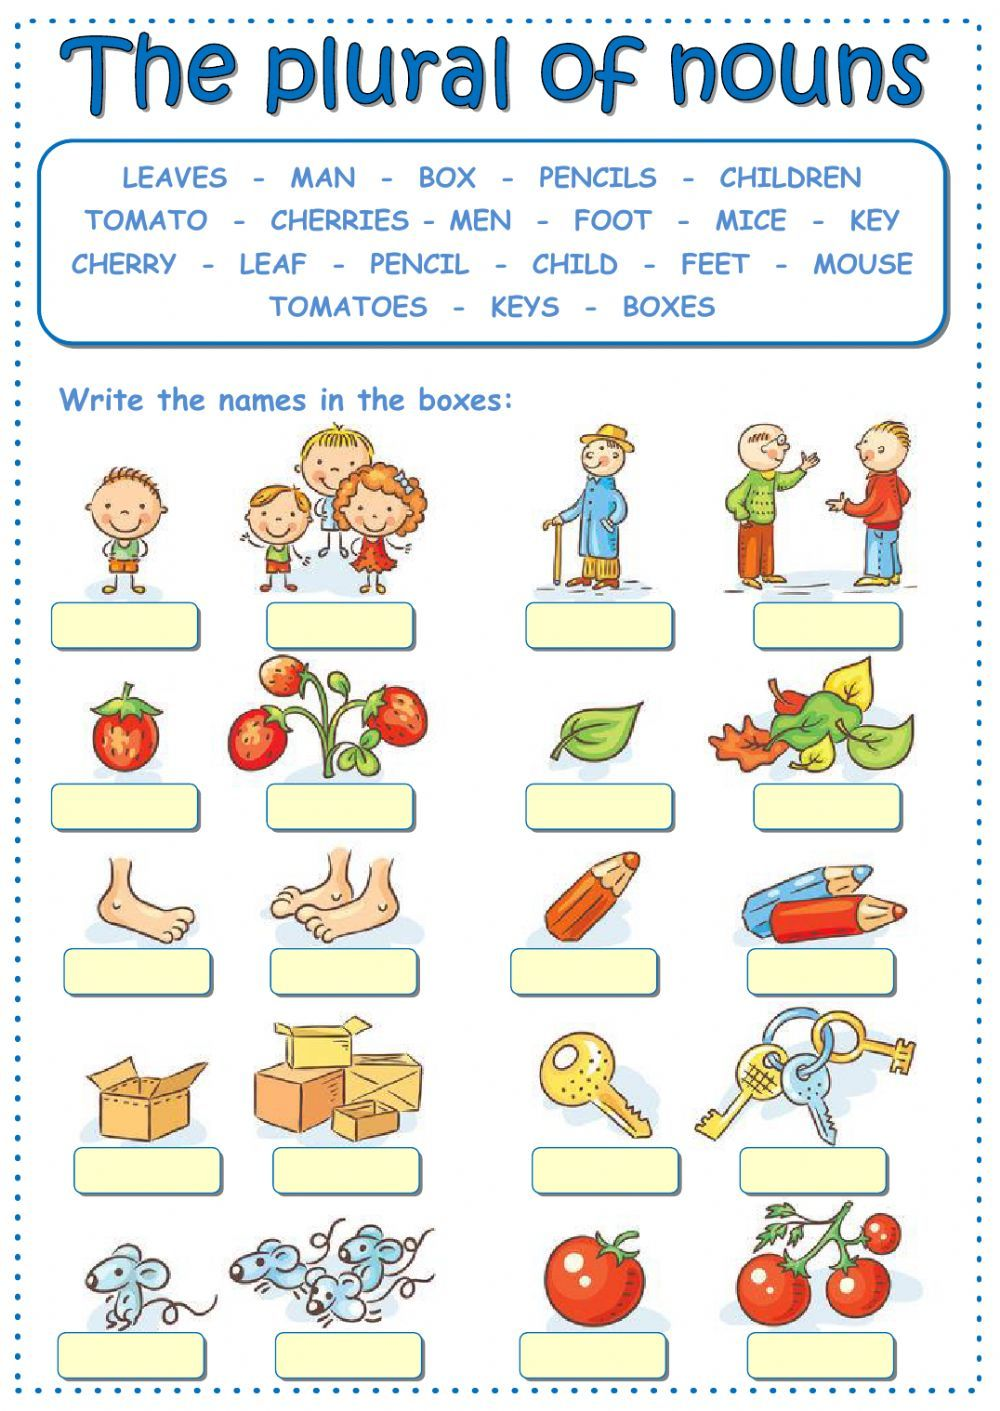 11,239 FREE Grammar Worksheets - Busy Teacher